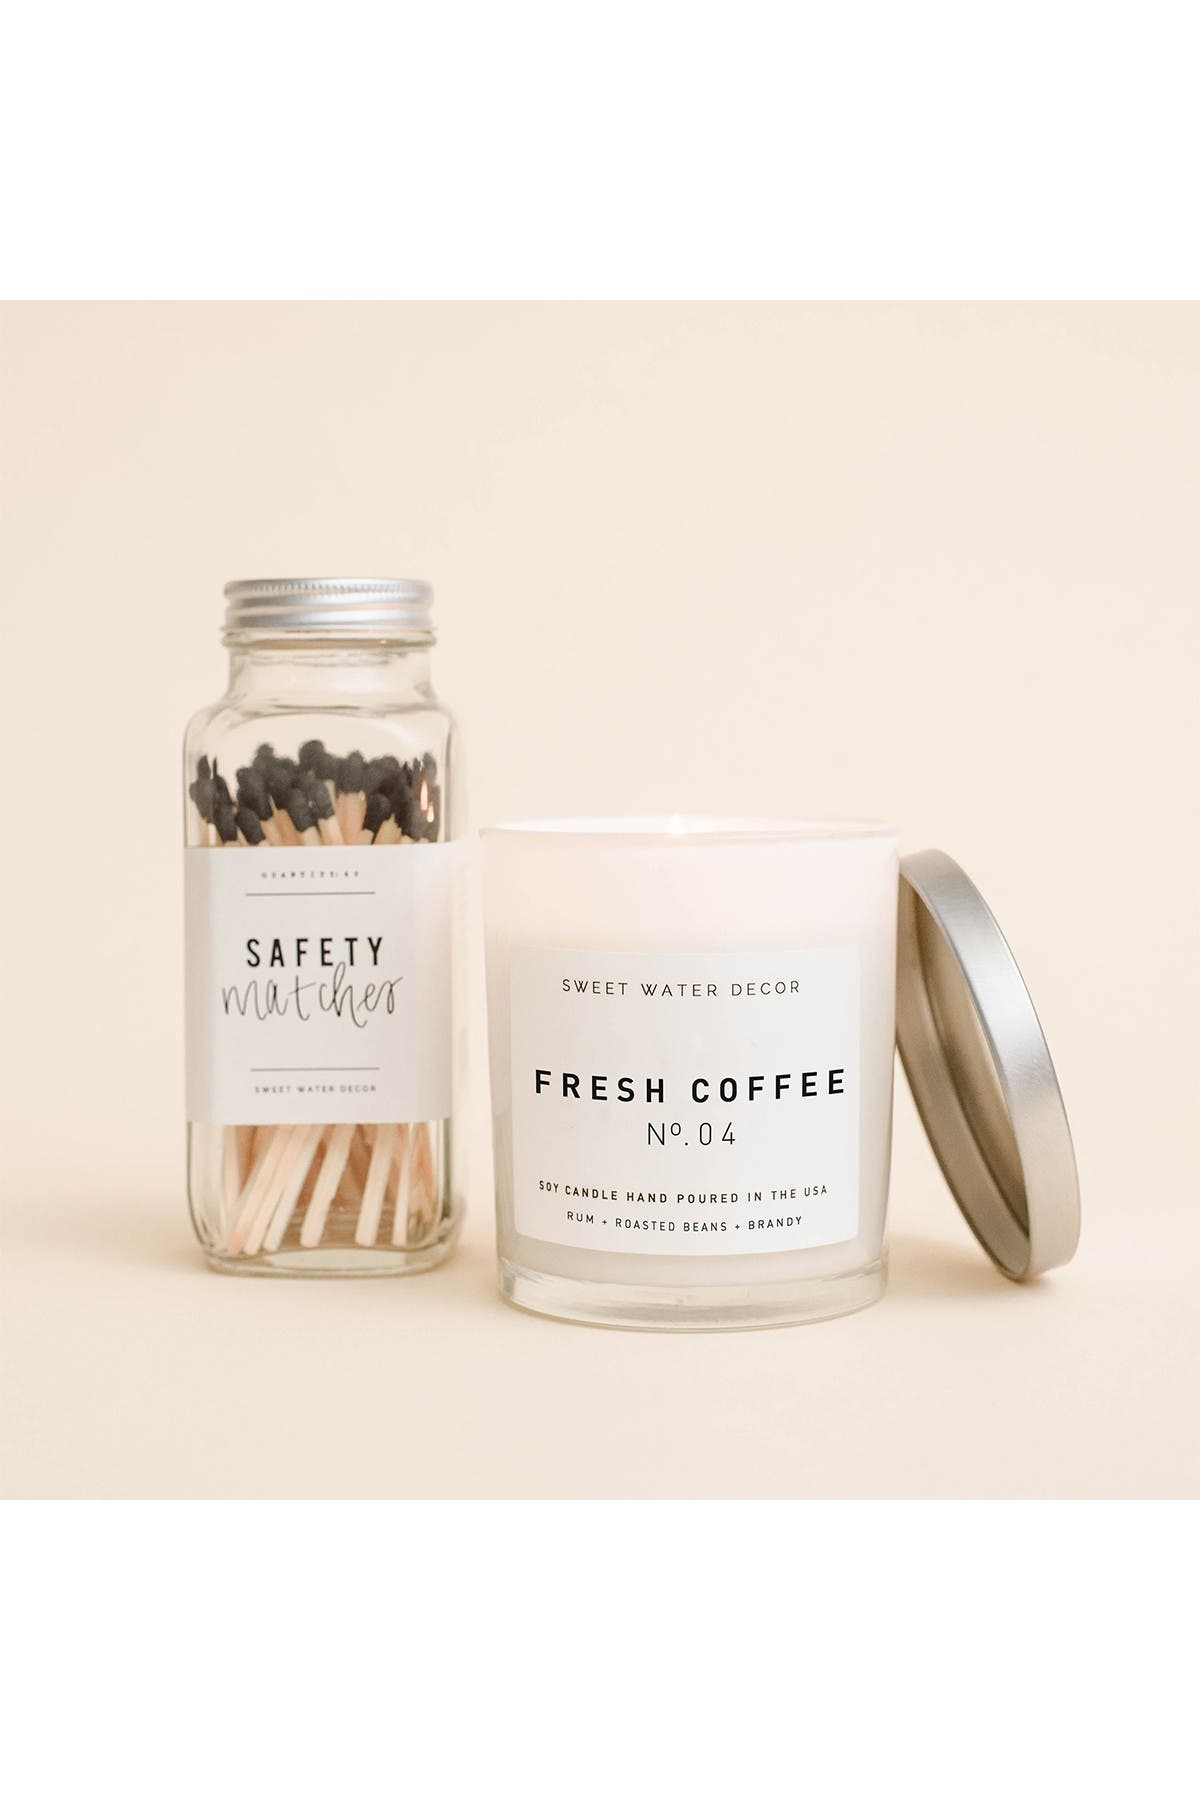 Image of SWEET WATER DECOR Fresh Coffee 11 oz. Soy Jar Candle - Set of 2